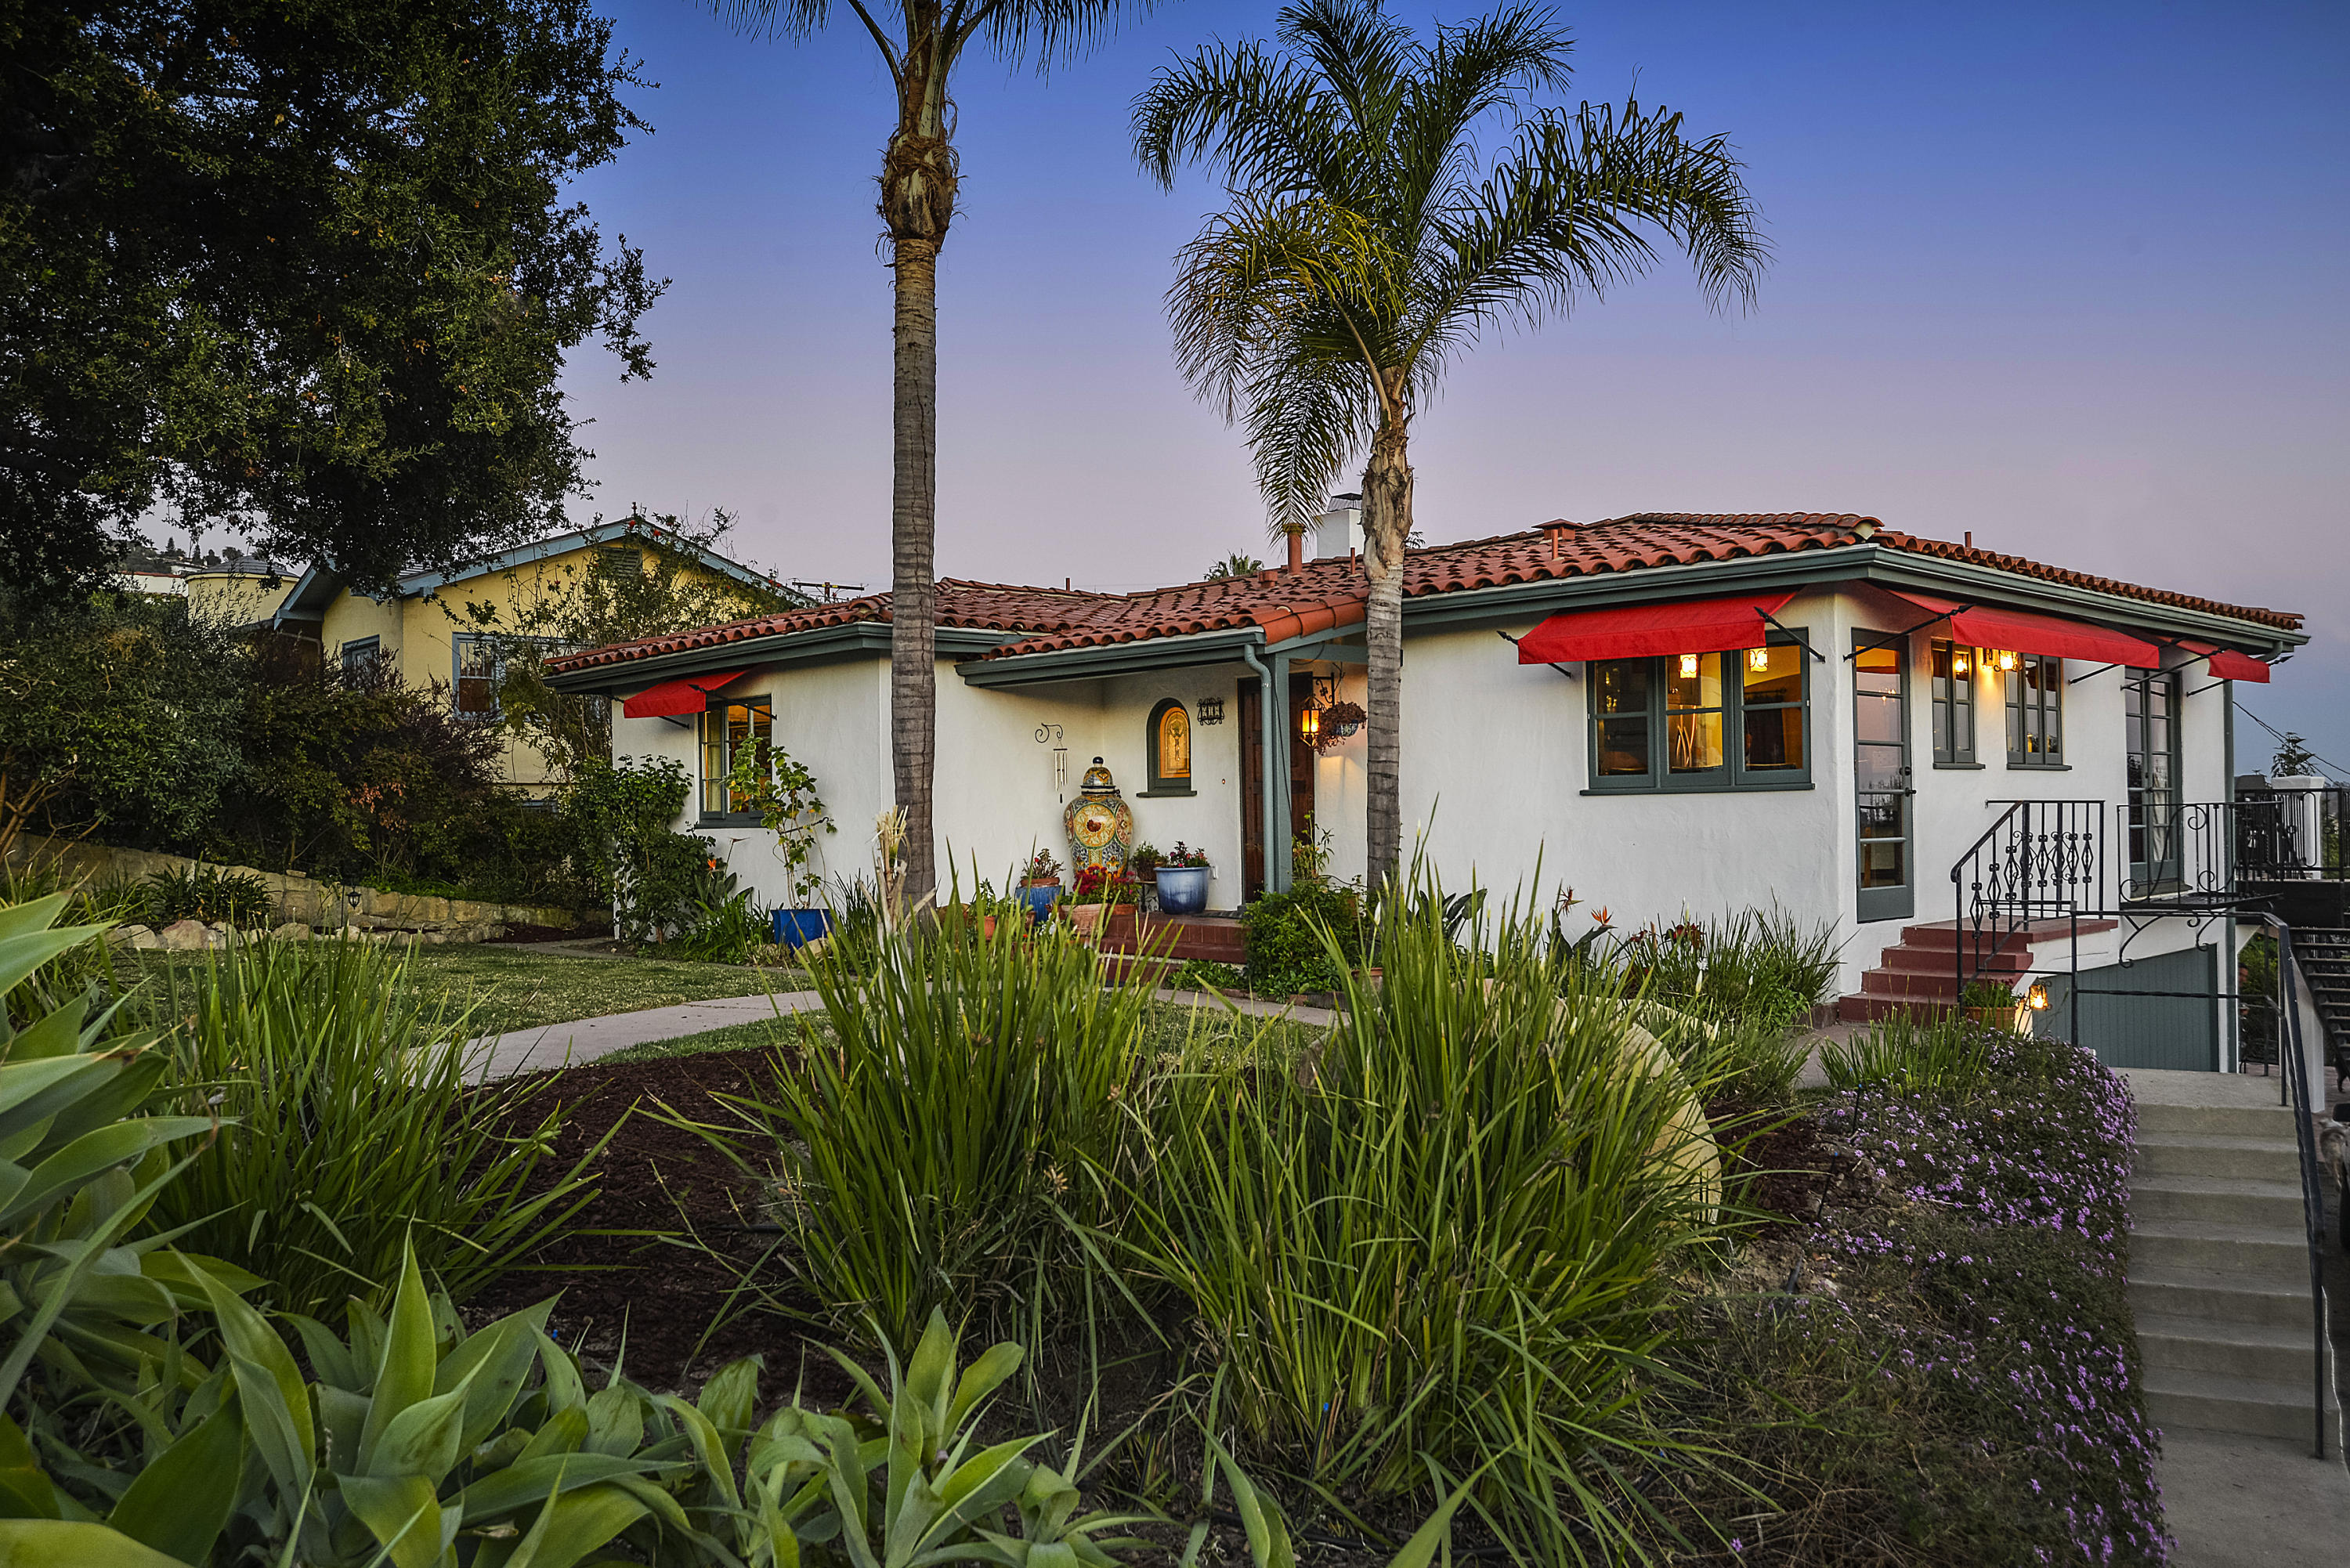 Property photo for 918 Garcia Rd Santa Barbara, California 93103 - 19-1711